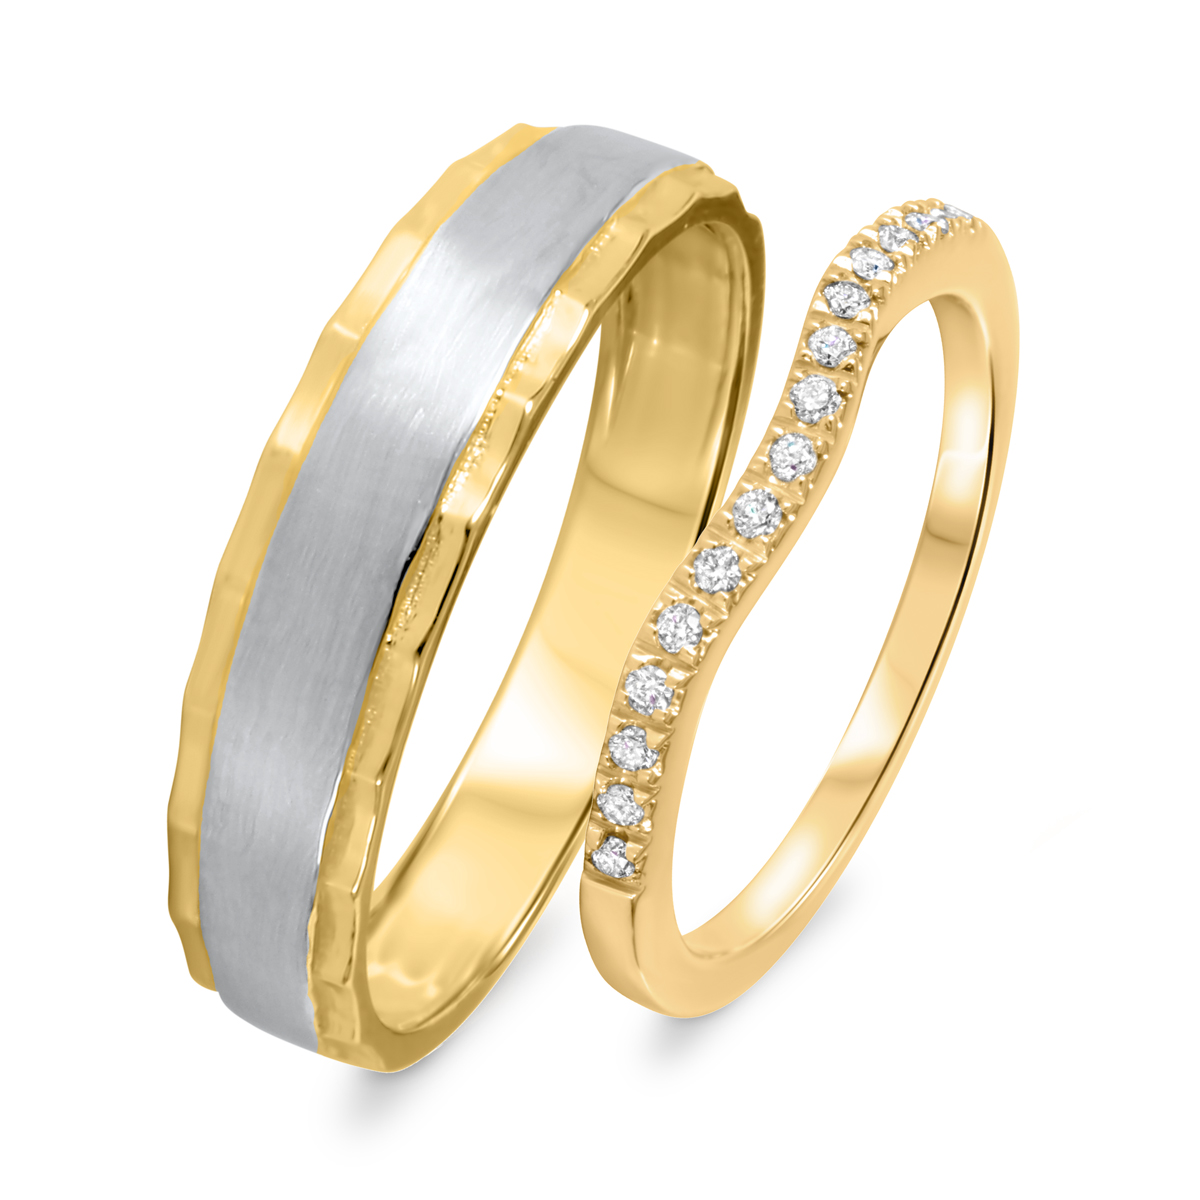 1/8 Carat T.W. Round Cut Diamond His And Hers Wedding Band Set 10K Yellow Gold-